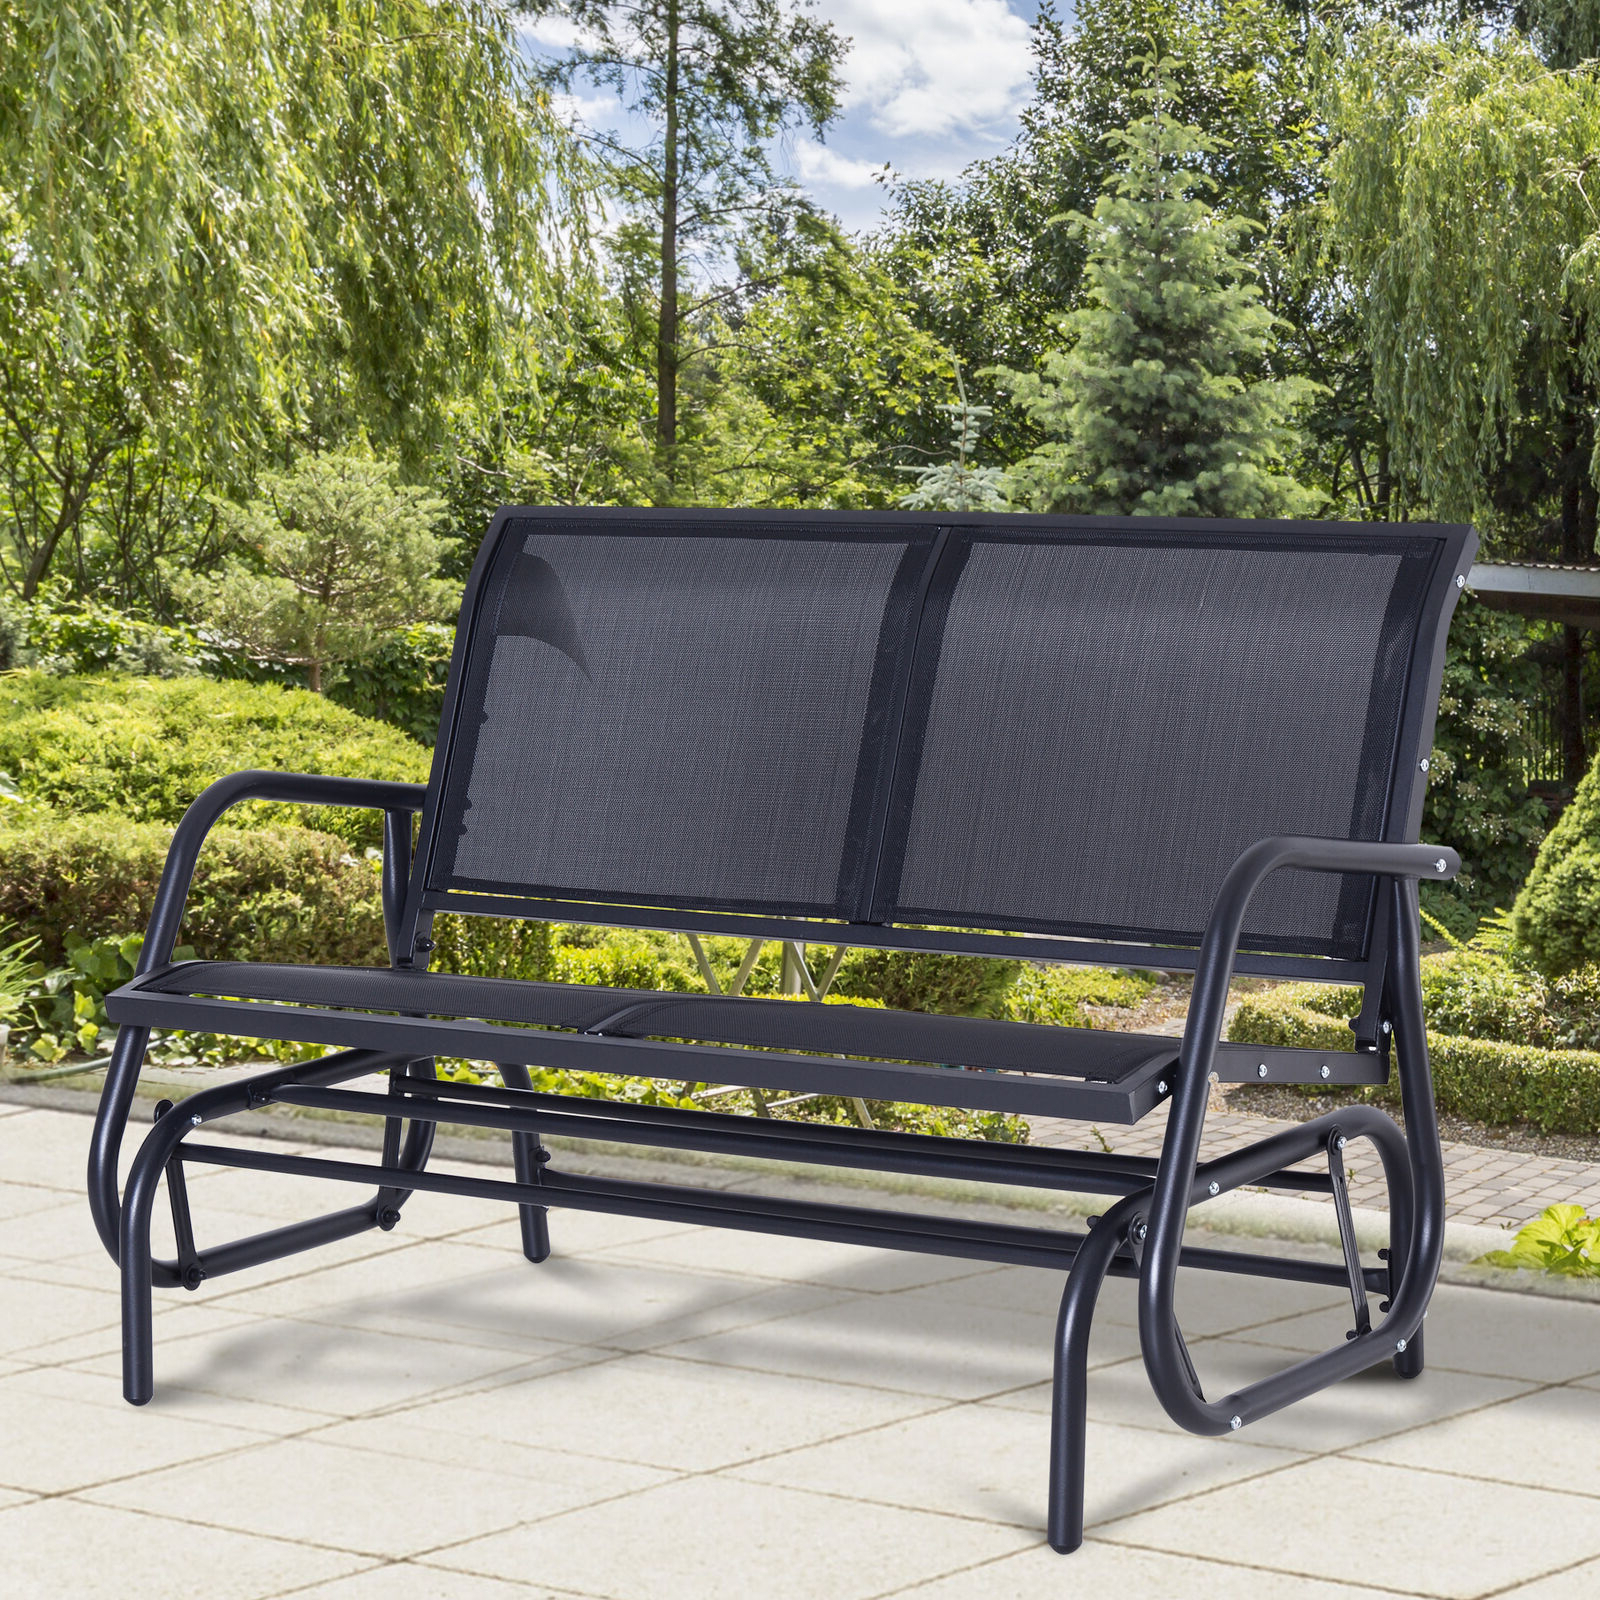 1 Person Antique Black Steel Outdoor Gliders Within Fashionable Outsunny Patio Double 2 Person Glider Bench Rocker Porch Love Seat Swing Chair (View 24 of 25)